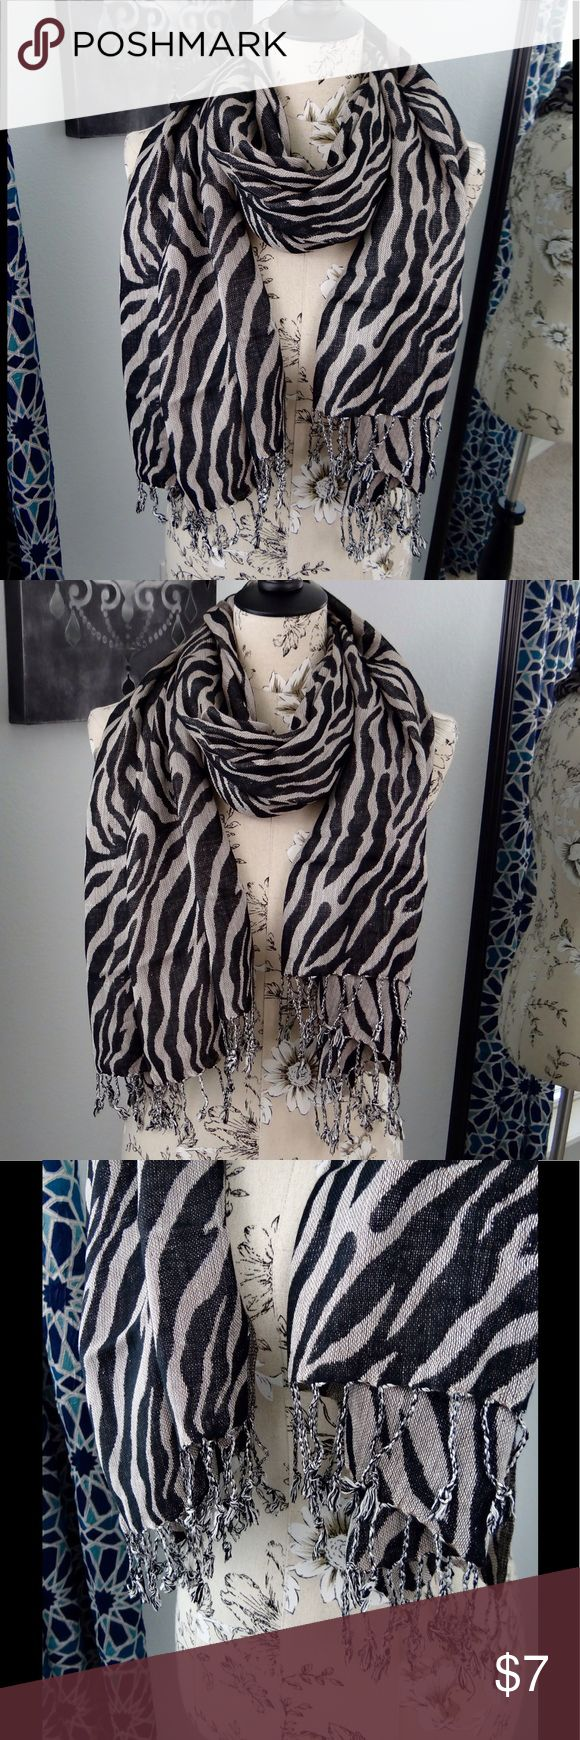 Grace Adele zebra scarf Grace Adele zebra scarf.... information coming soon! Grace Adele Accessories Scarves & Wraps